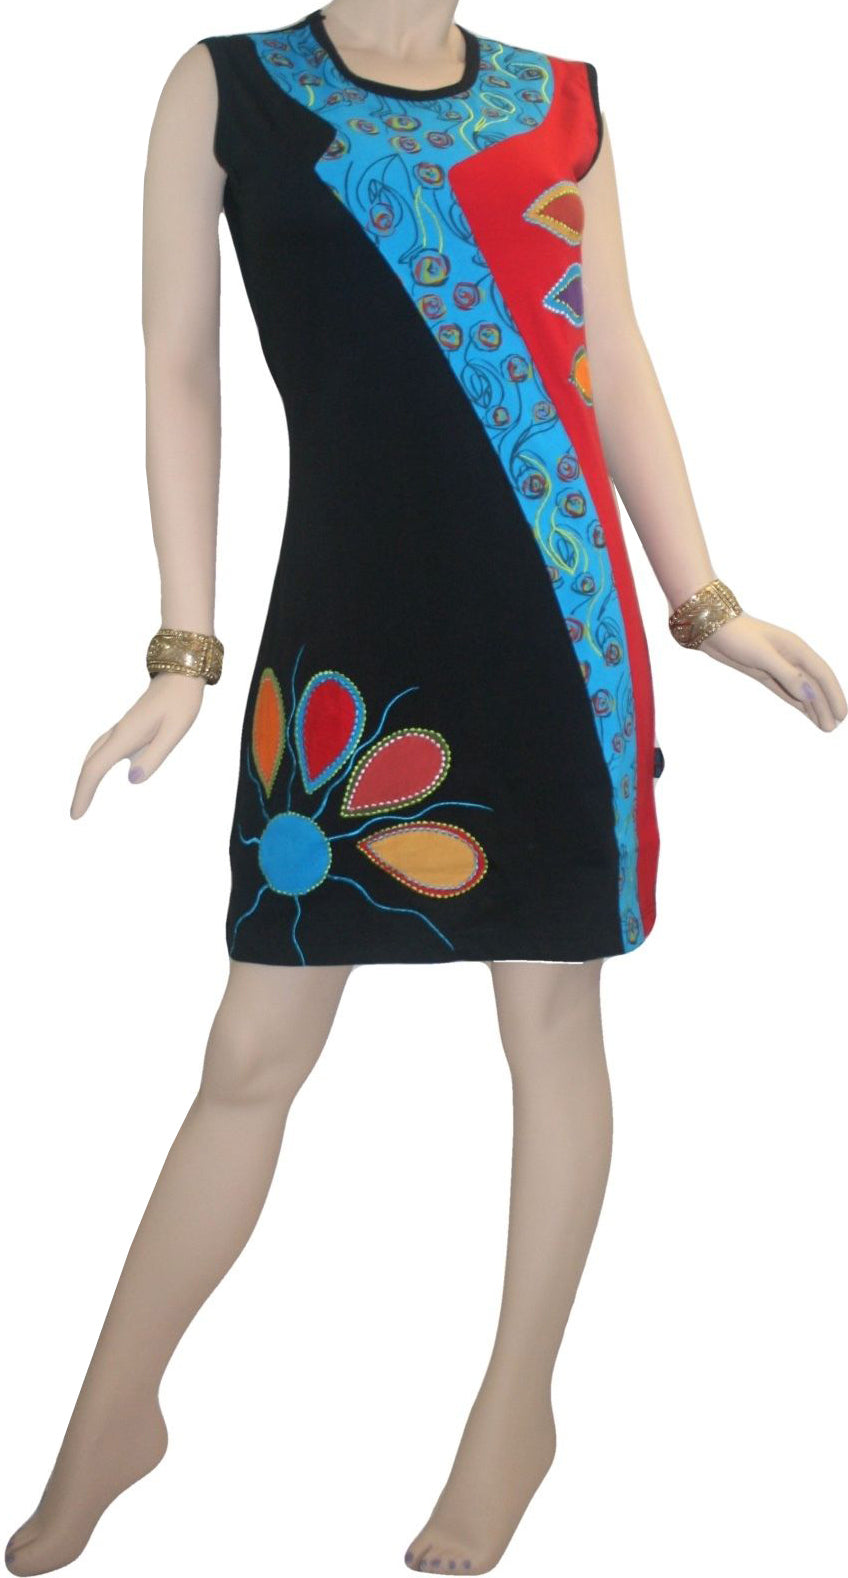 RD 15 Agan Traders Nepal Bohemian Knit Light Weight Cotton Mid Length Summer Dress - Agan Traders, RDR Multi 15